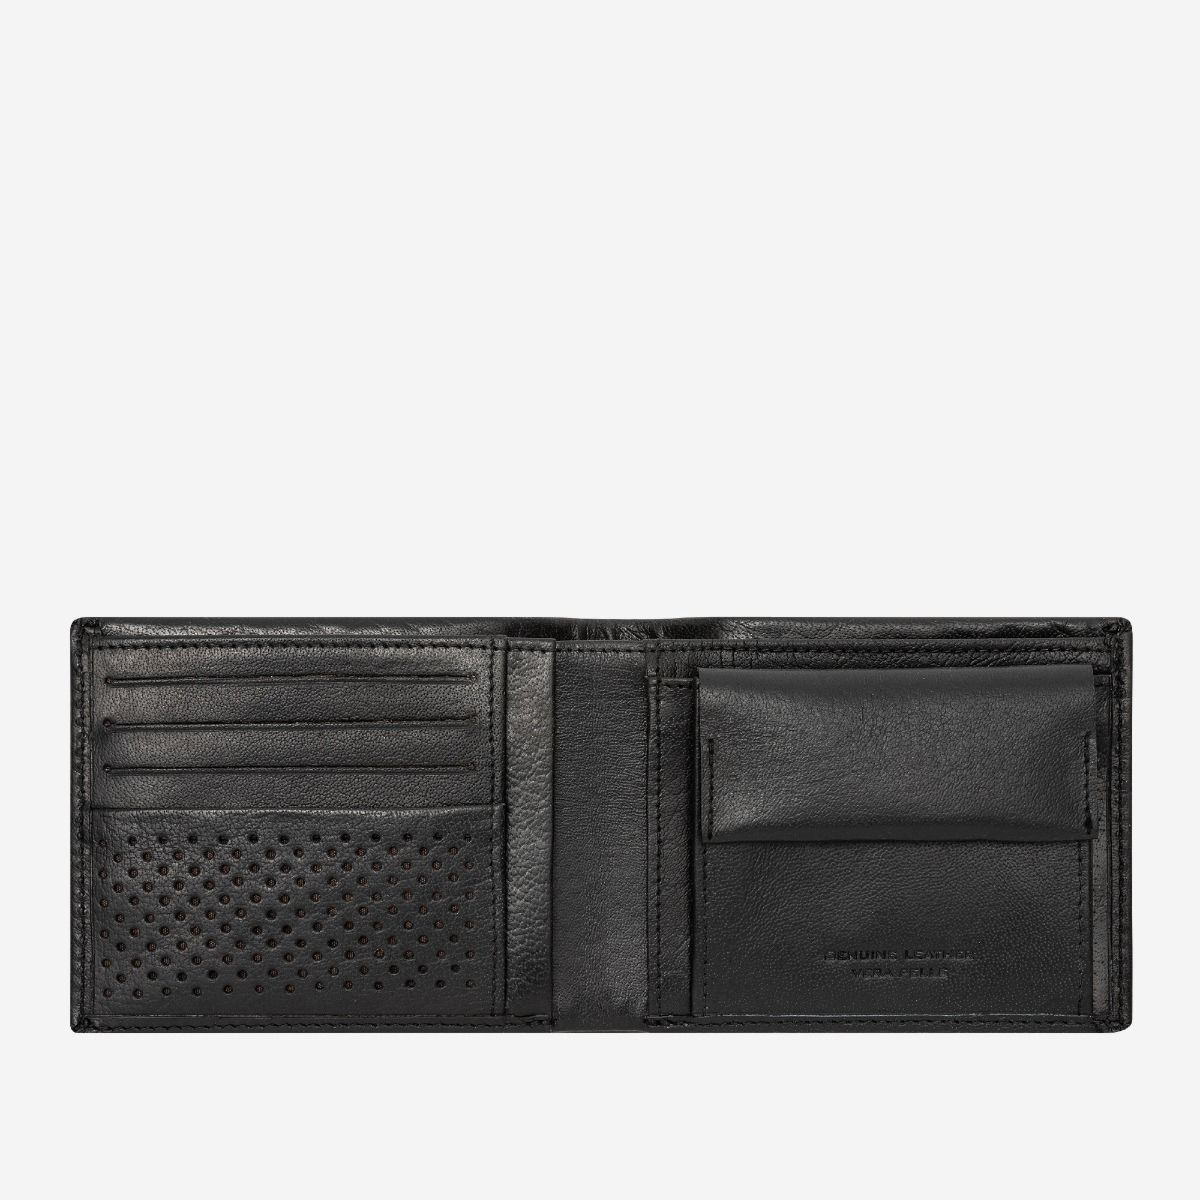 Mens Minimalist Leather Wallet with Coin Holder - Black